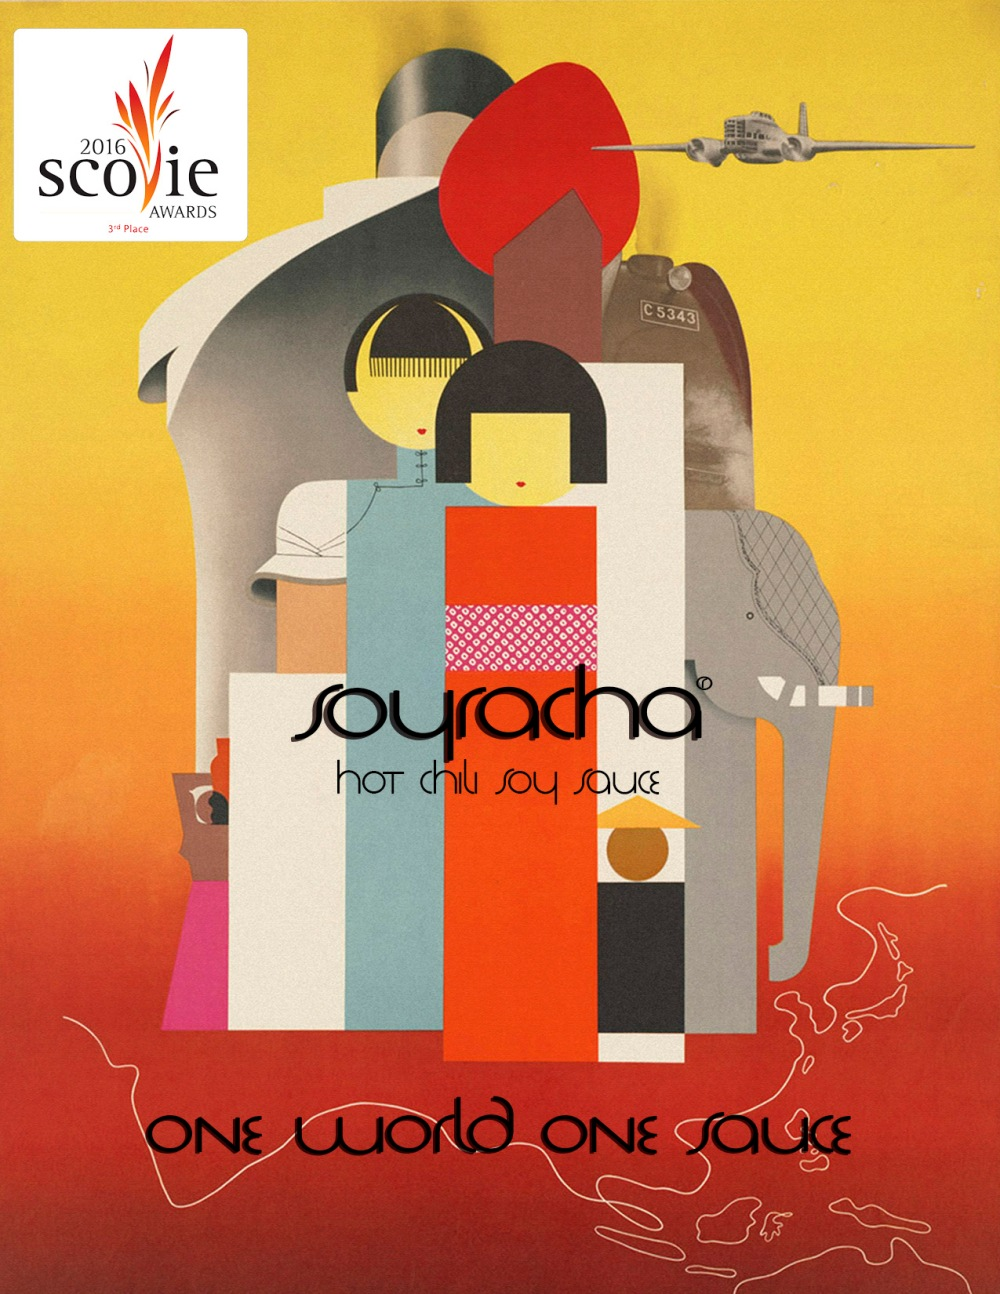 Soyracha Ad 3rd Place 2016 Scovie Awards